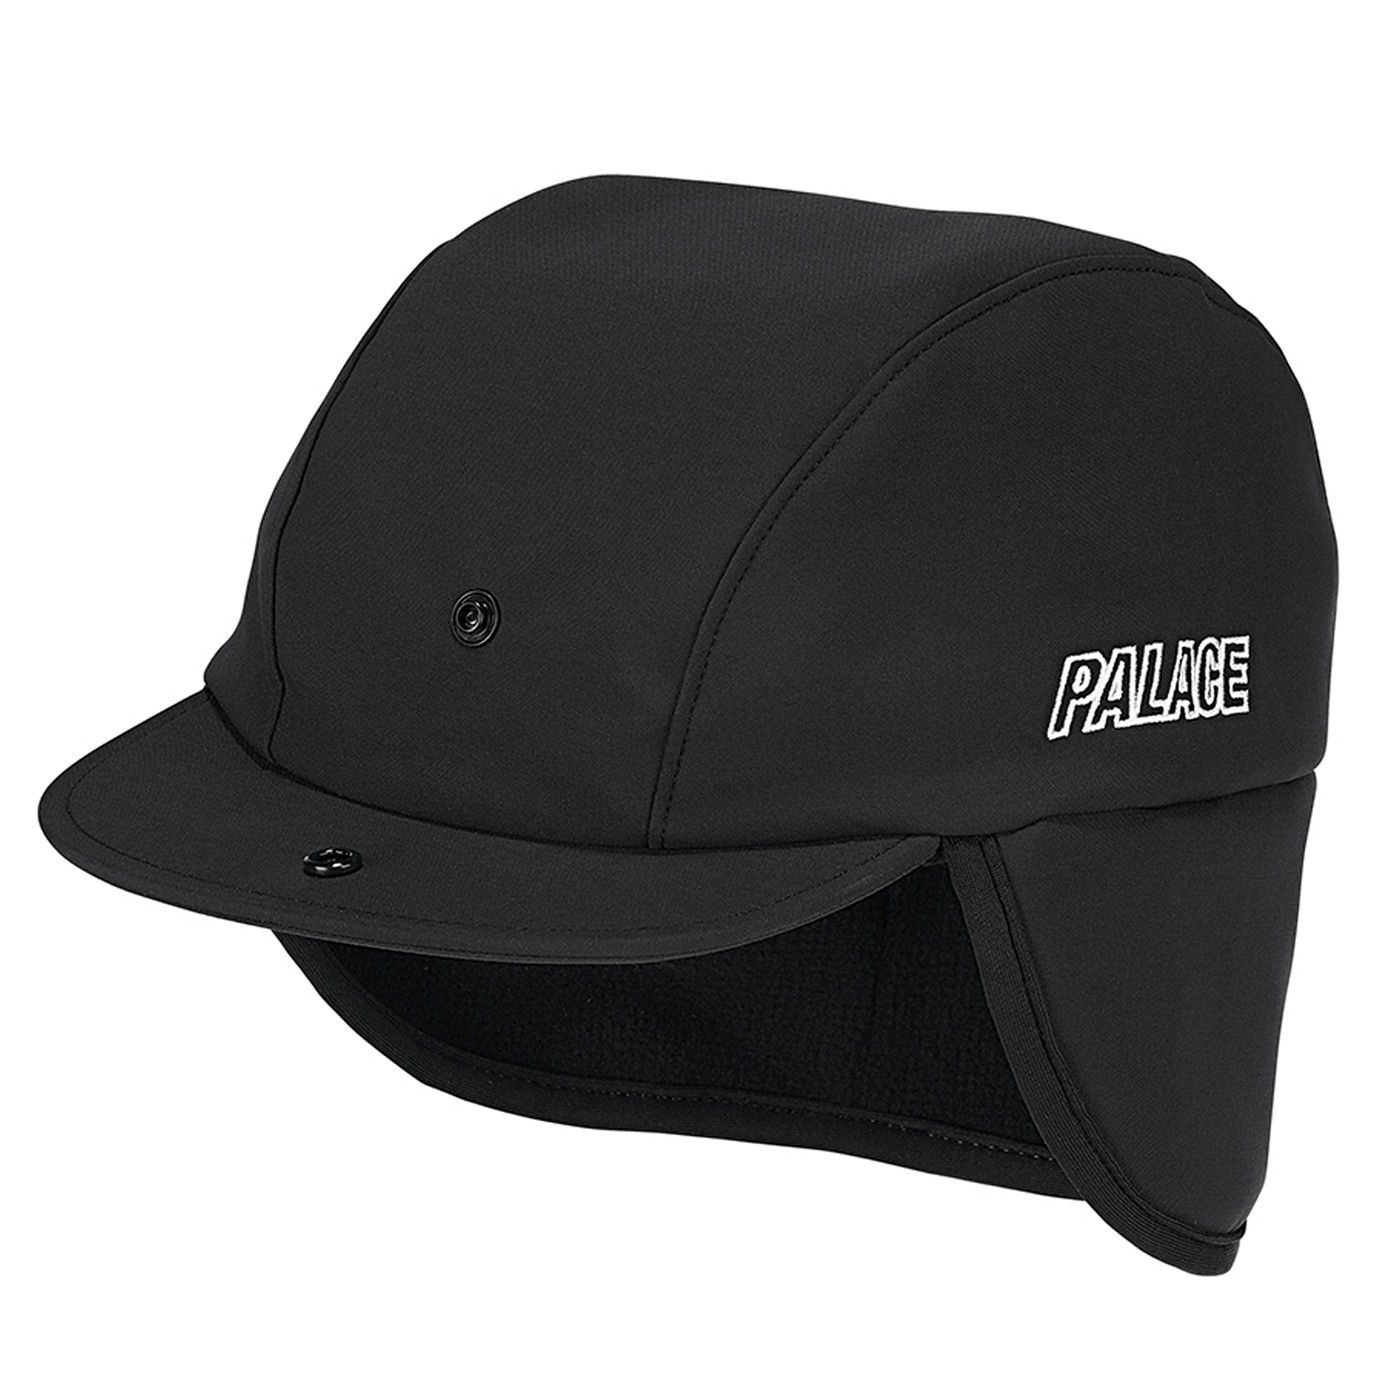 5d08eee5 Palace x Adidas Palace Cap in Black | Caps, Beanies & Bucket Hats ...